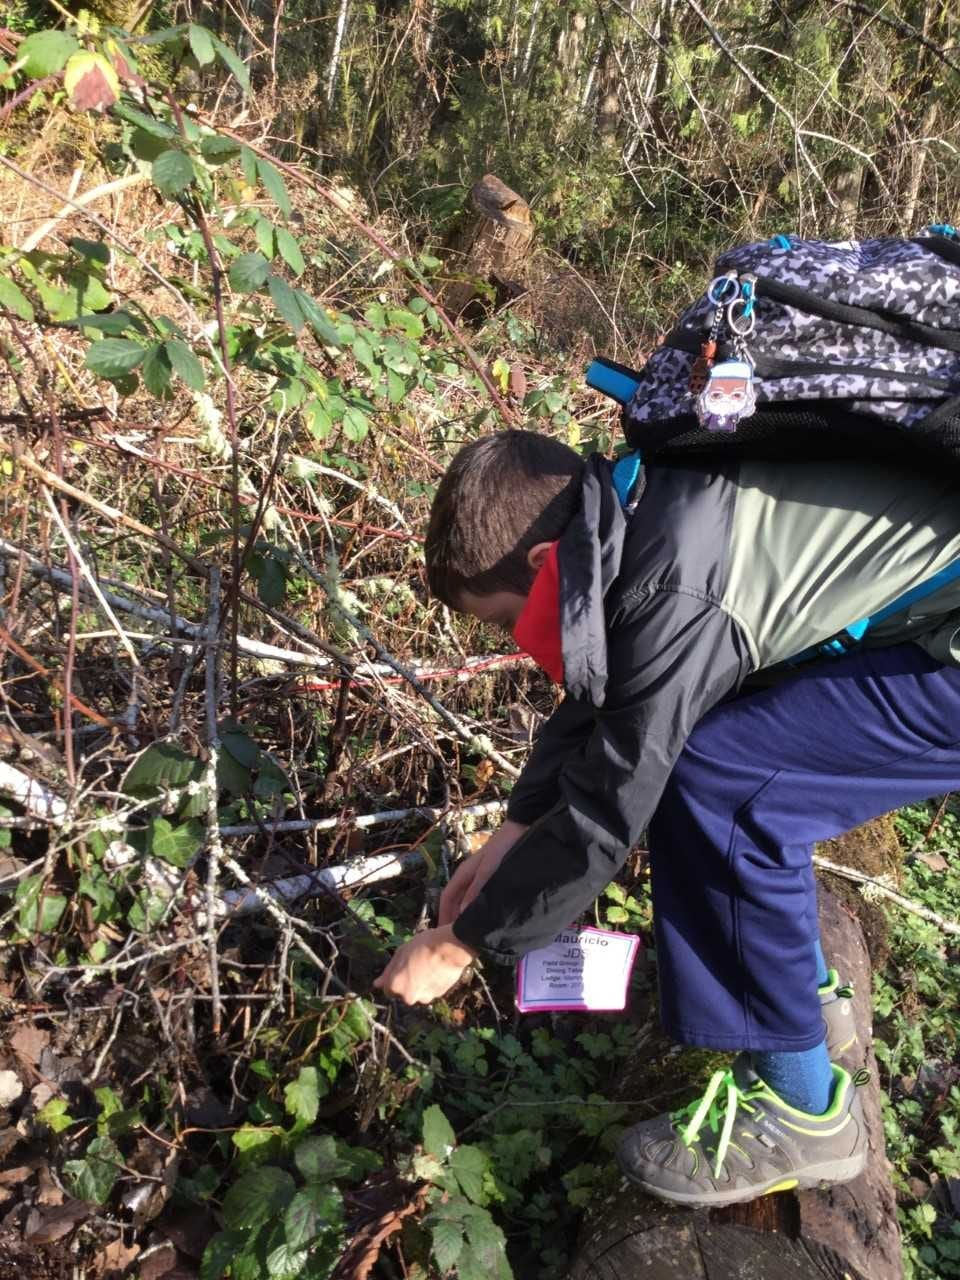 A student bends down to pull invasive ivy.